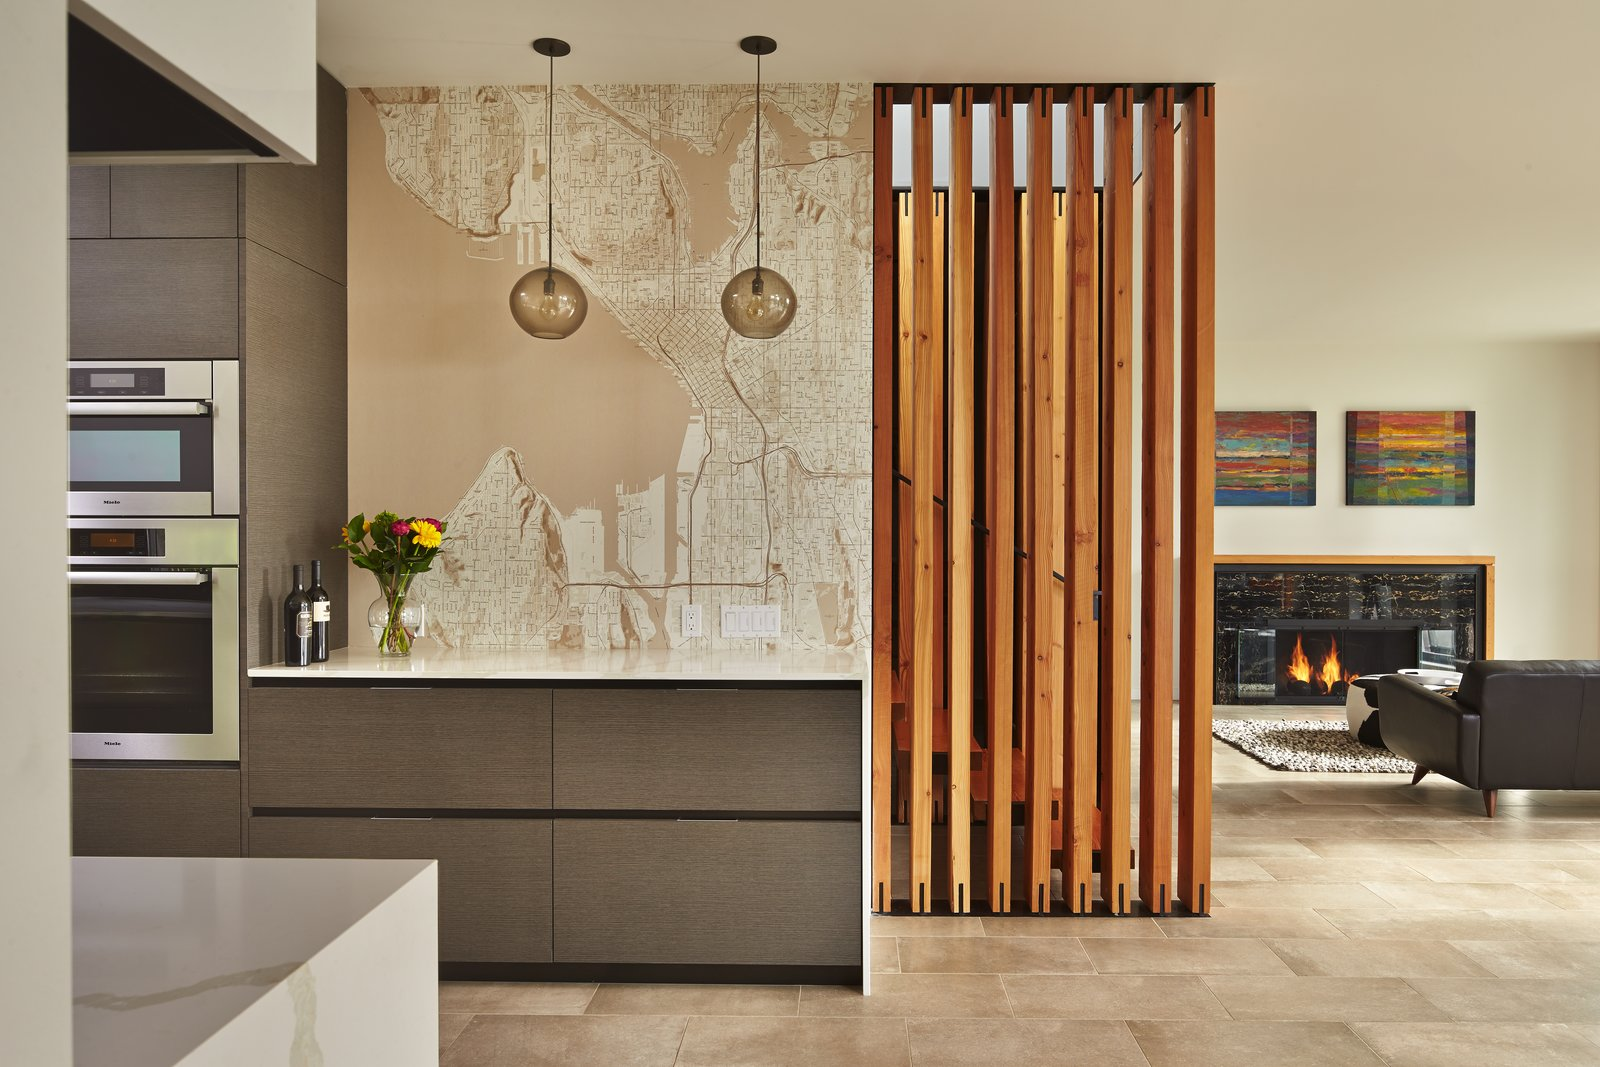 Tagged: Laminate Cabinet, Engineered Quartz Counter, Porcelain Tile Floor, Pendant Lighting, Wall Oven, Living Room, Accent Lighting, Gas Burning Fireplace, and Sofa. BLK_LAB by Patano Studio Architecure